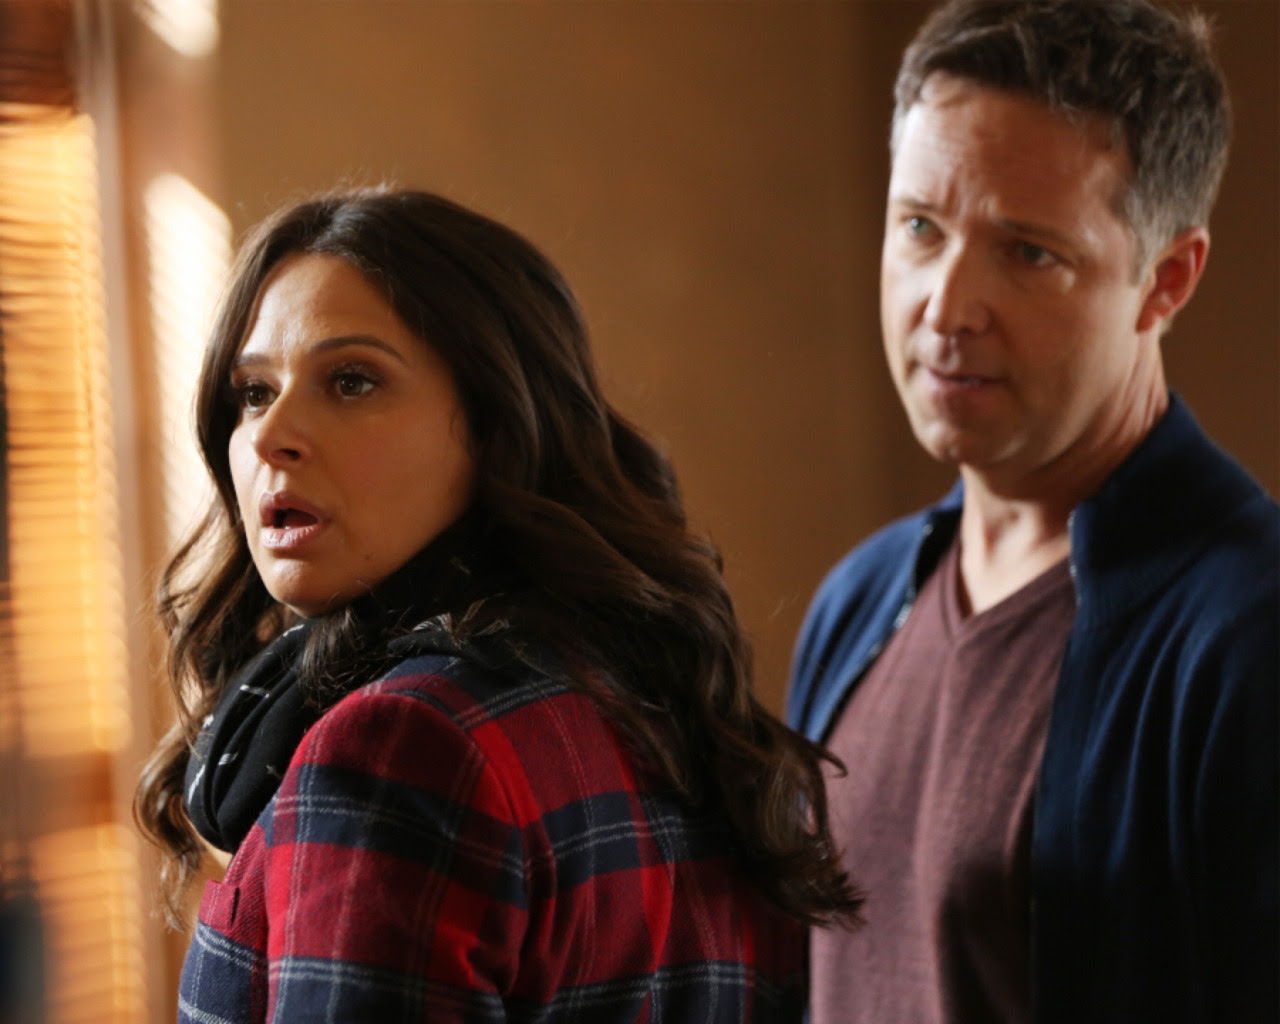 http://vignette2.wikia.nocookie.net/scandal/images/a/ad/5x09_-_Quinn_and_Charlie_2.jpg/revision/latest?cb=20151117223652